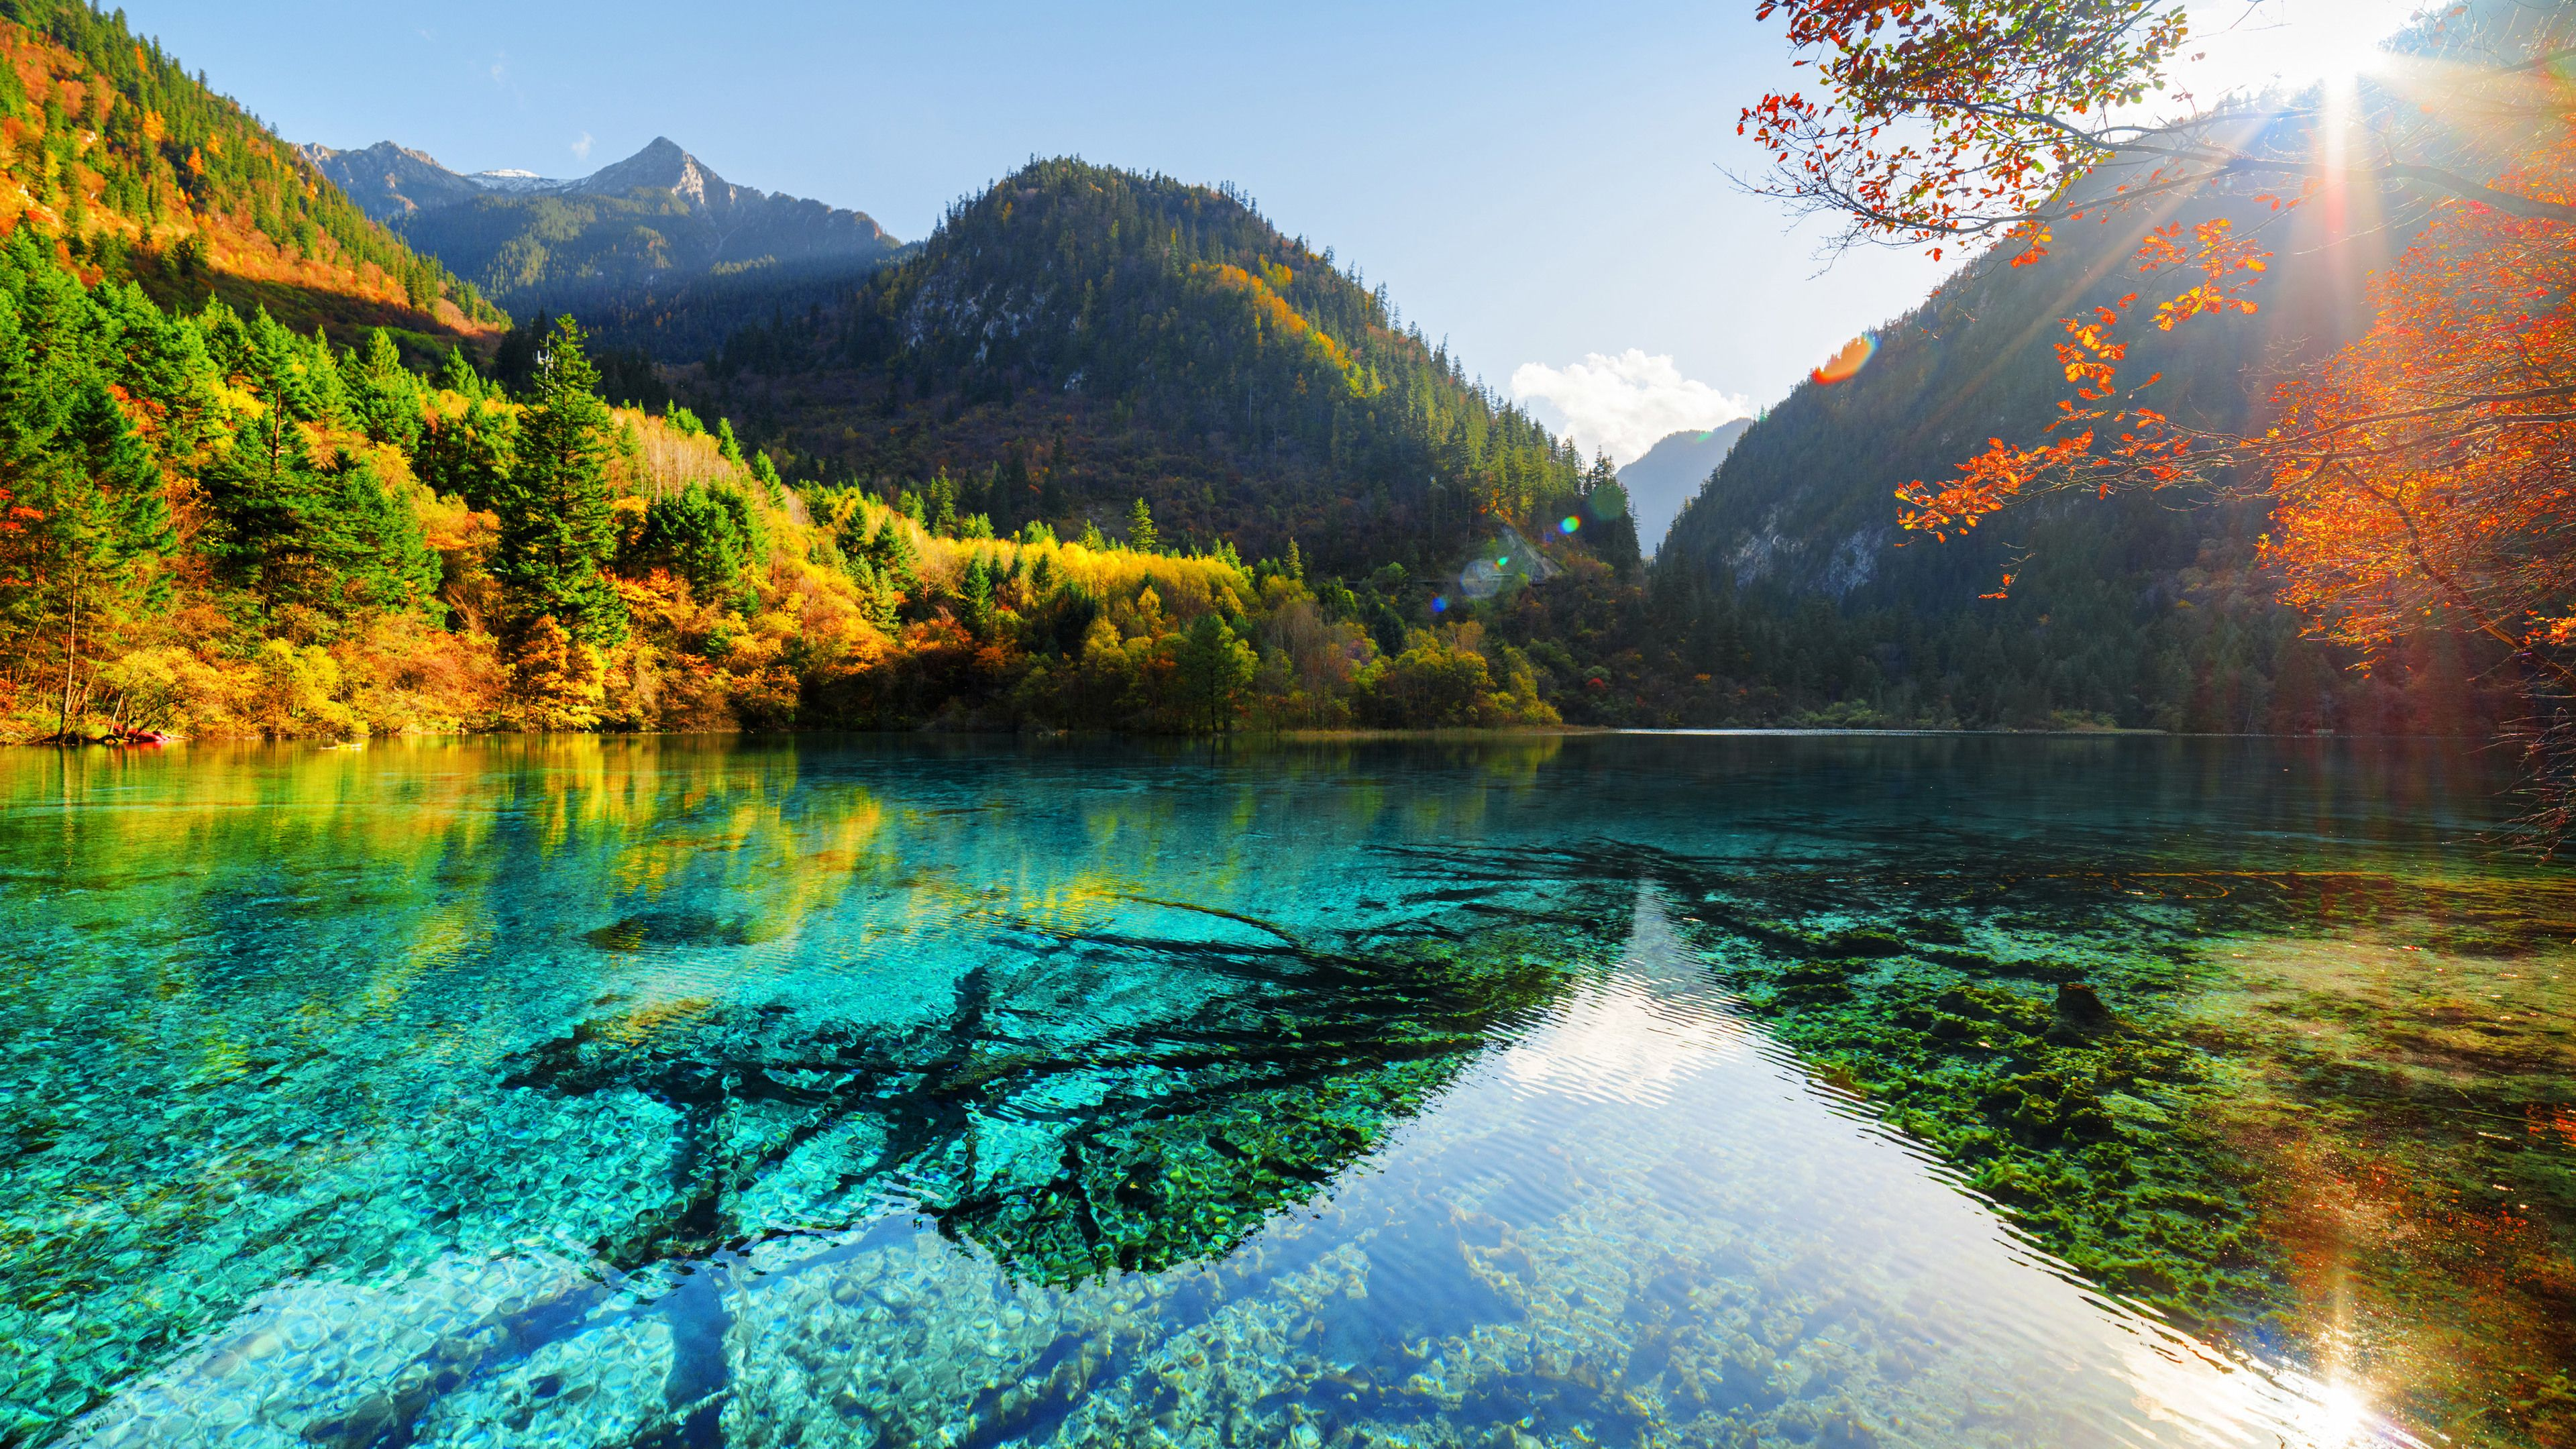 Lake Ultra Hd 4k Sunbeam Wallpapers Nature Wallpapers Lake Wallpapers Hd Wallpapers Fall Desktop Background Nature Nature Desktop Wallpaper Nature Pictures 4k wallpaper for pc nature